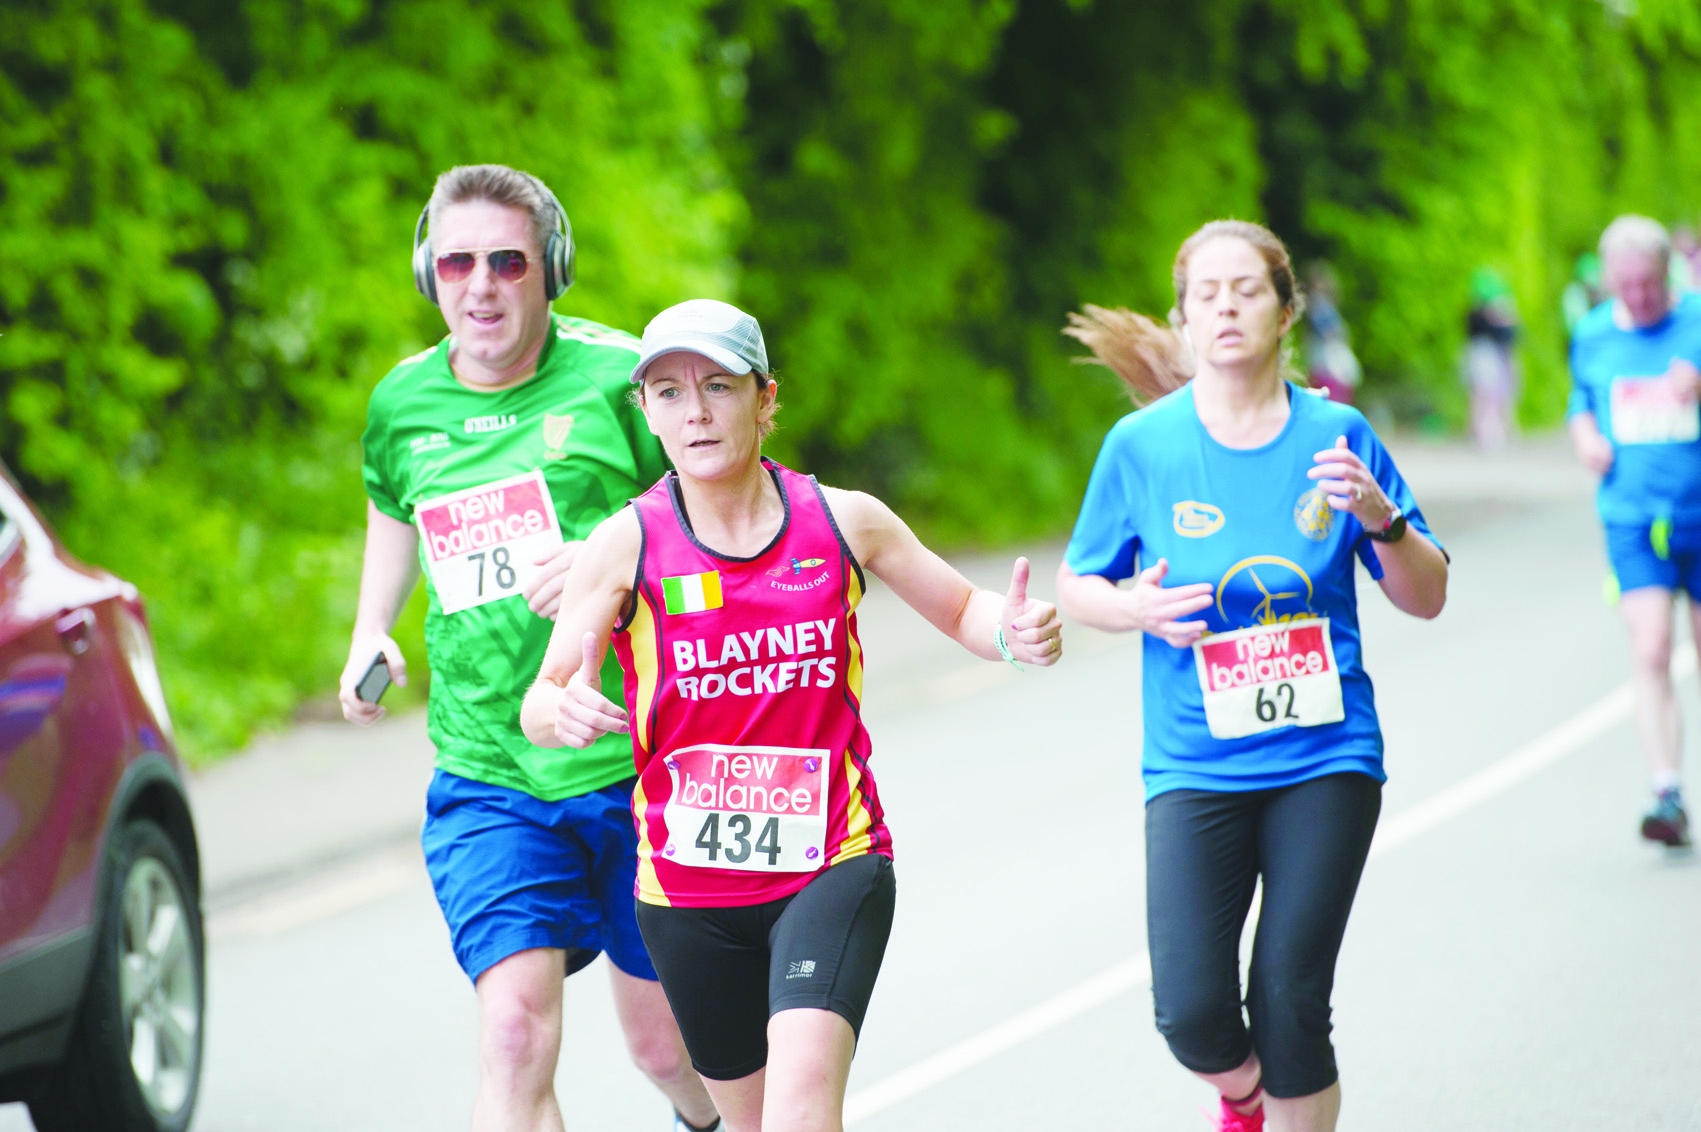 Karina Carroll from Blayney Rockets, during the Blackwater 10k. ©Rory Geary/The Northern Standard